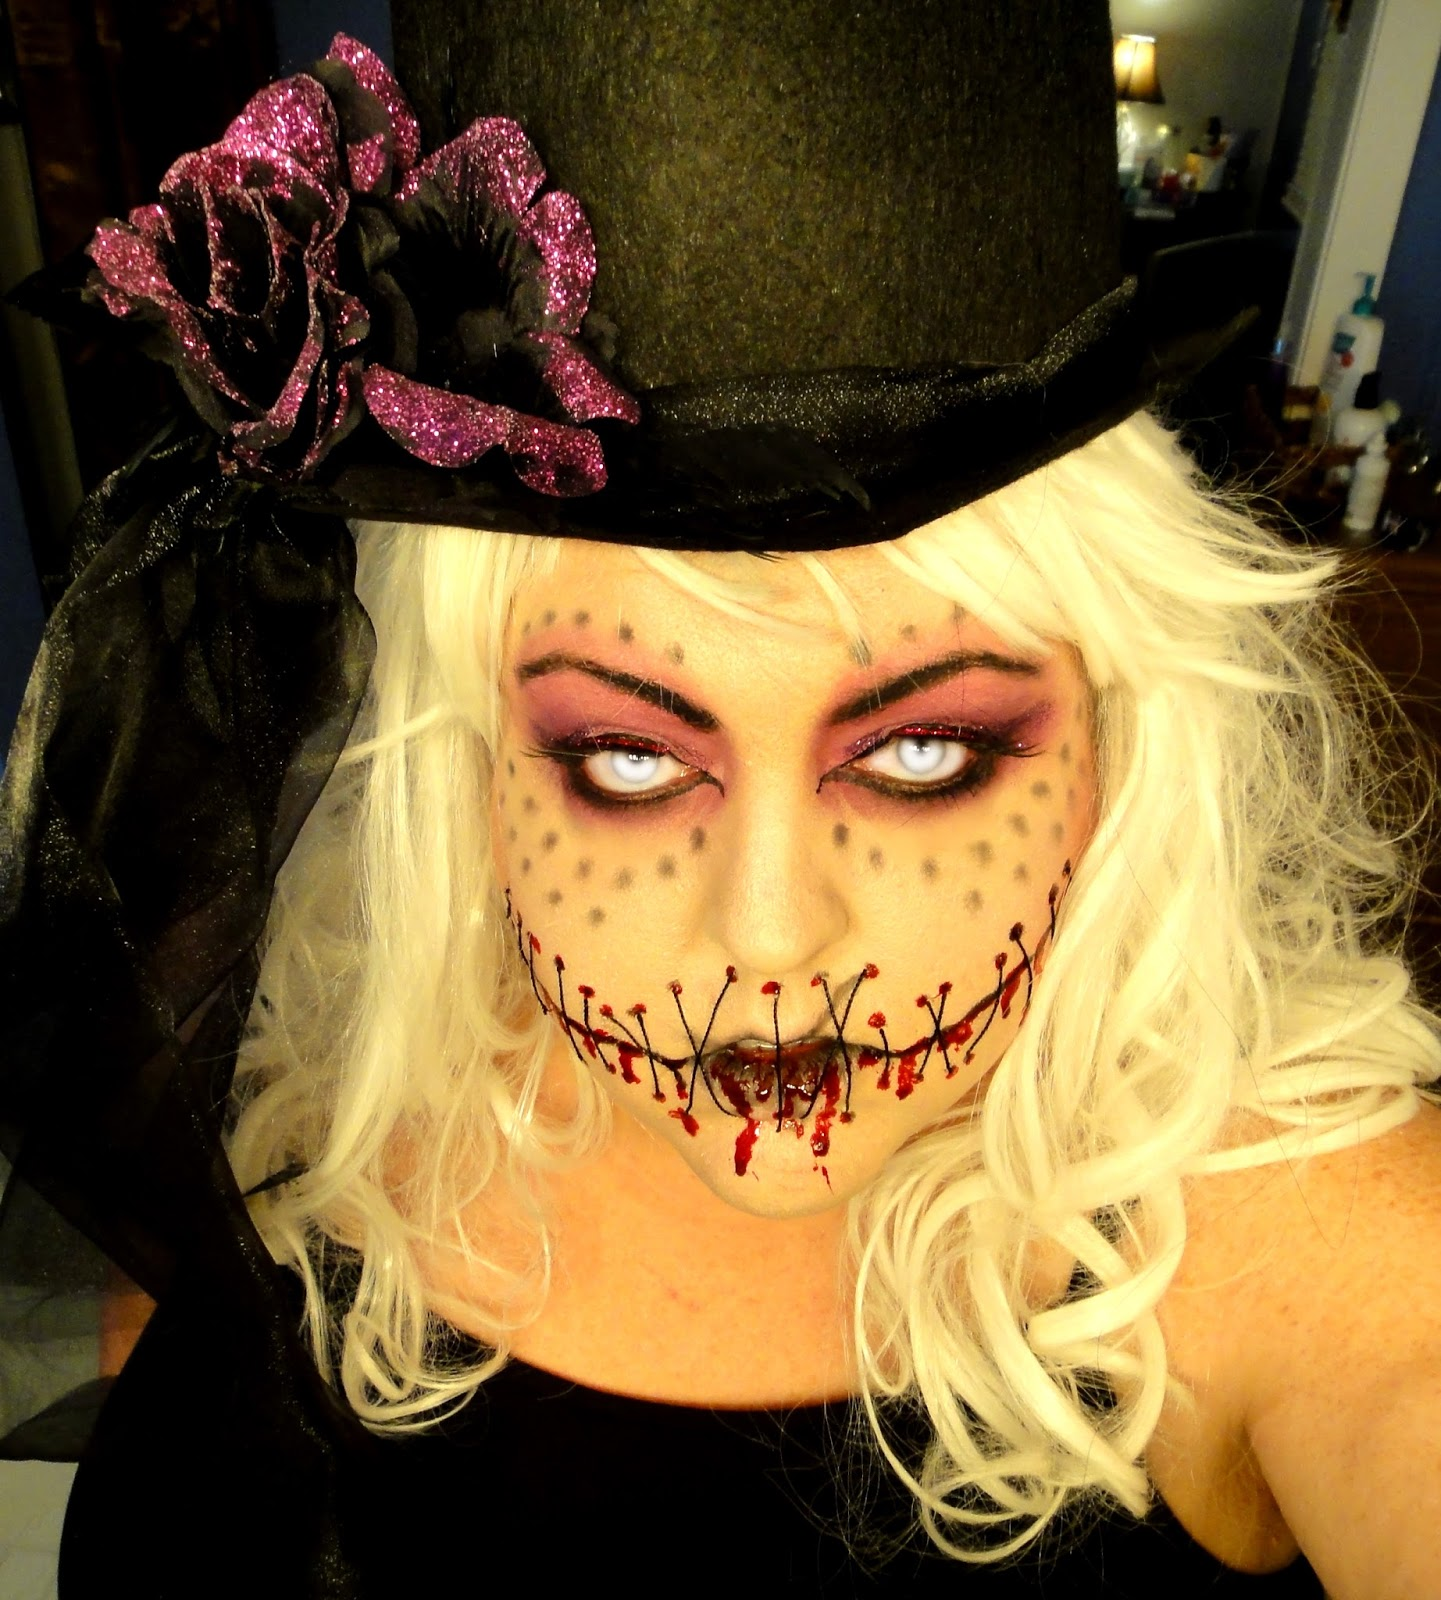 Thoughts from the Outernet: This is Halloween Voodoo Queen Costume